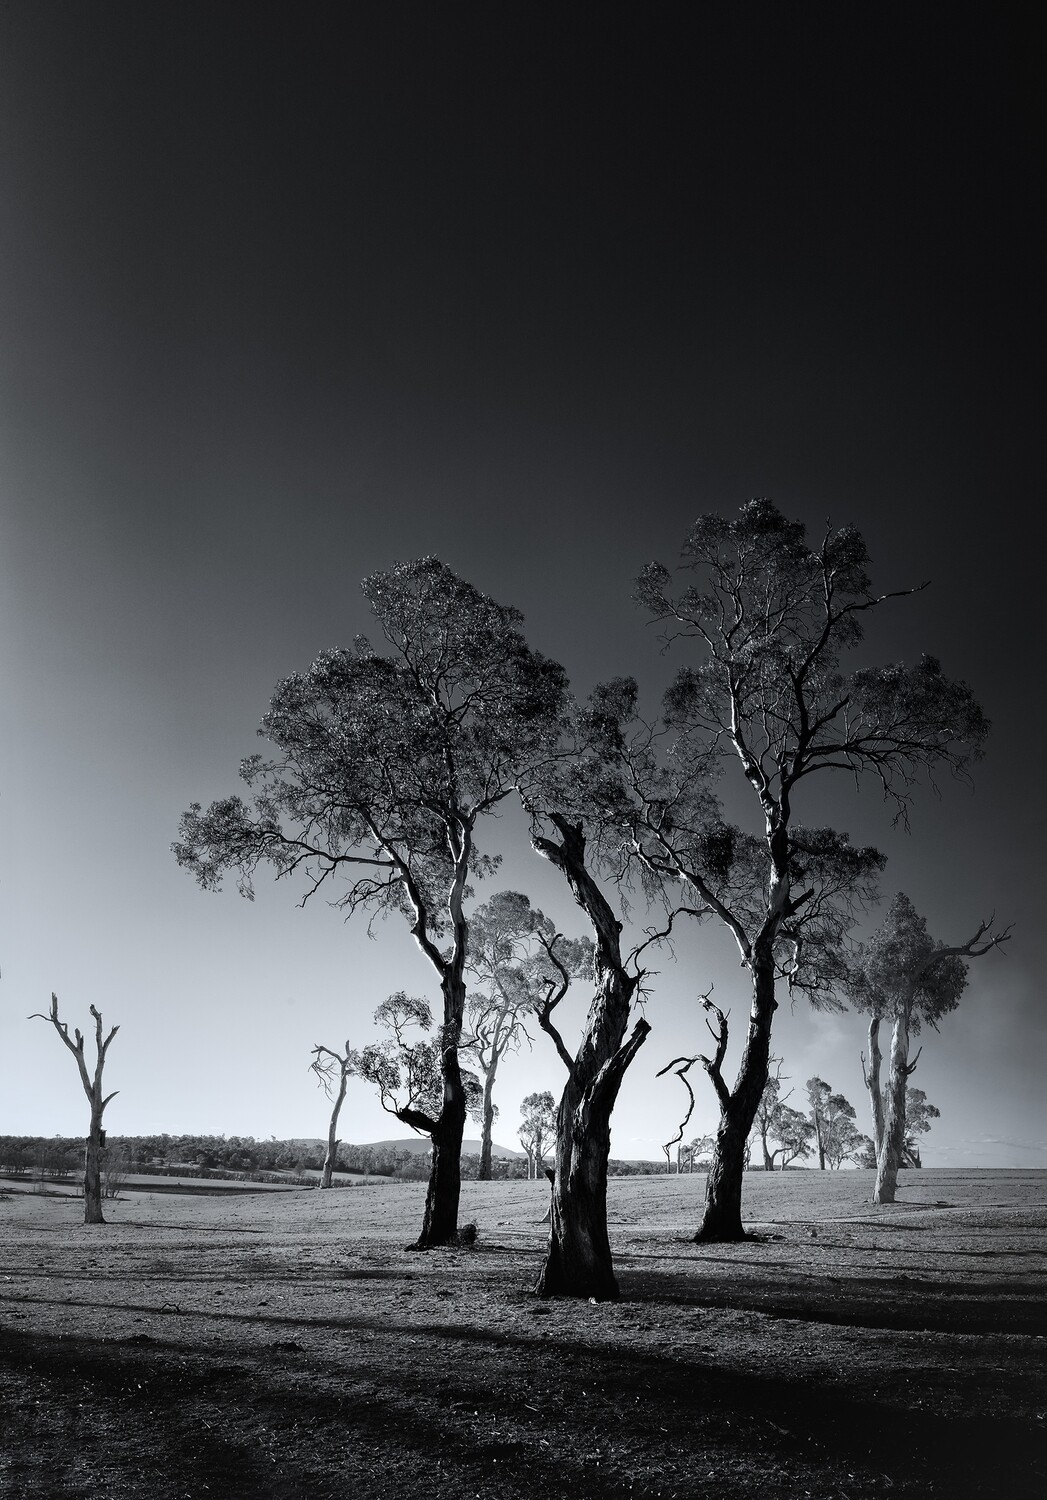 Australian Tree Series: Gum Trees #1